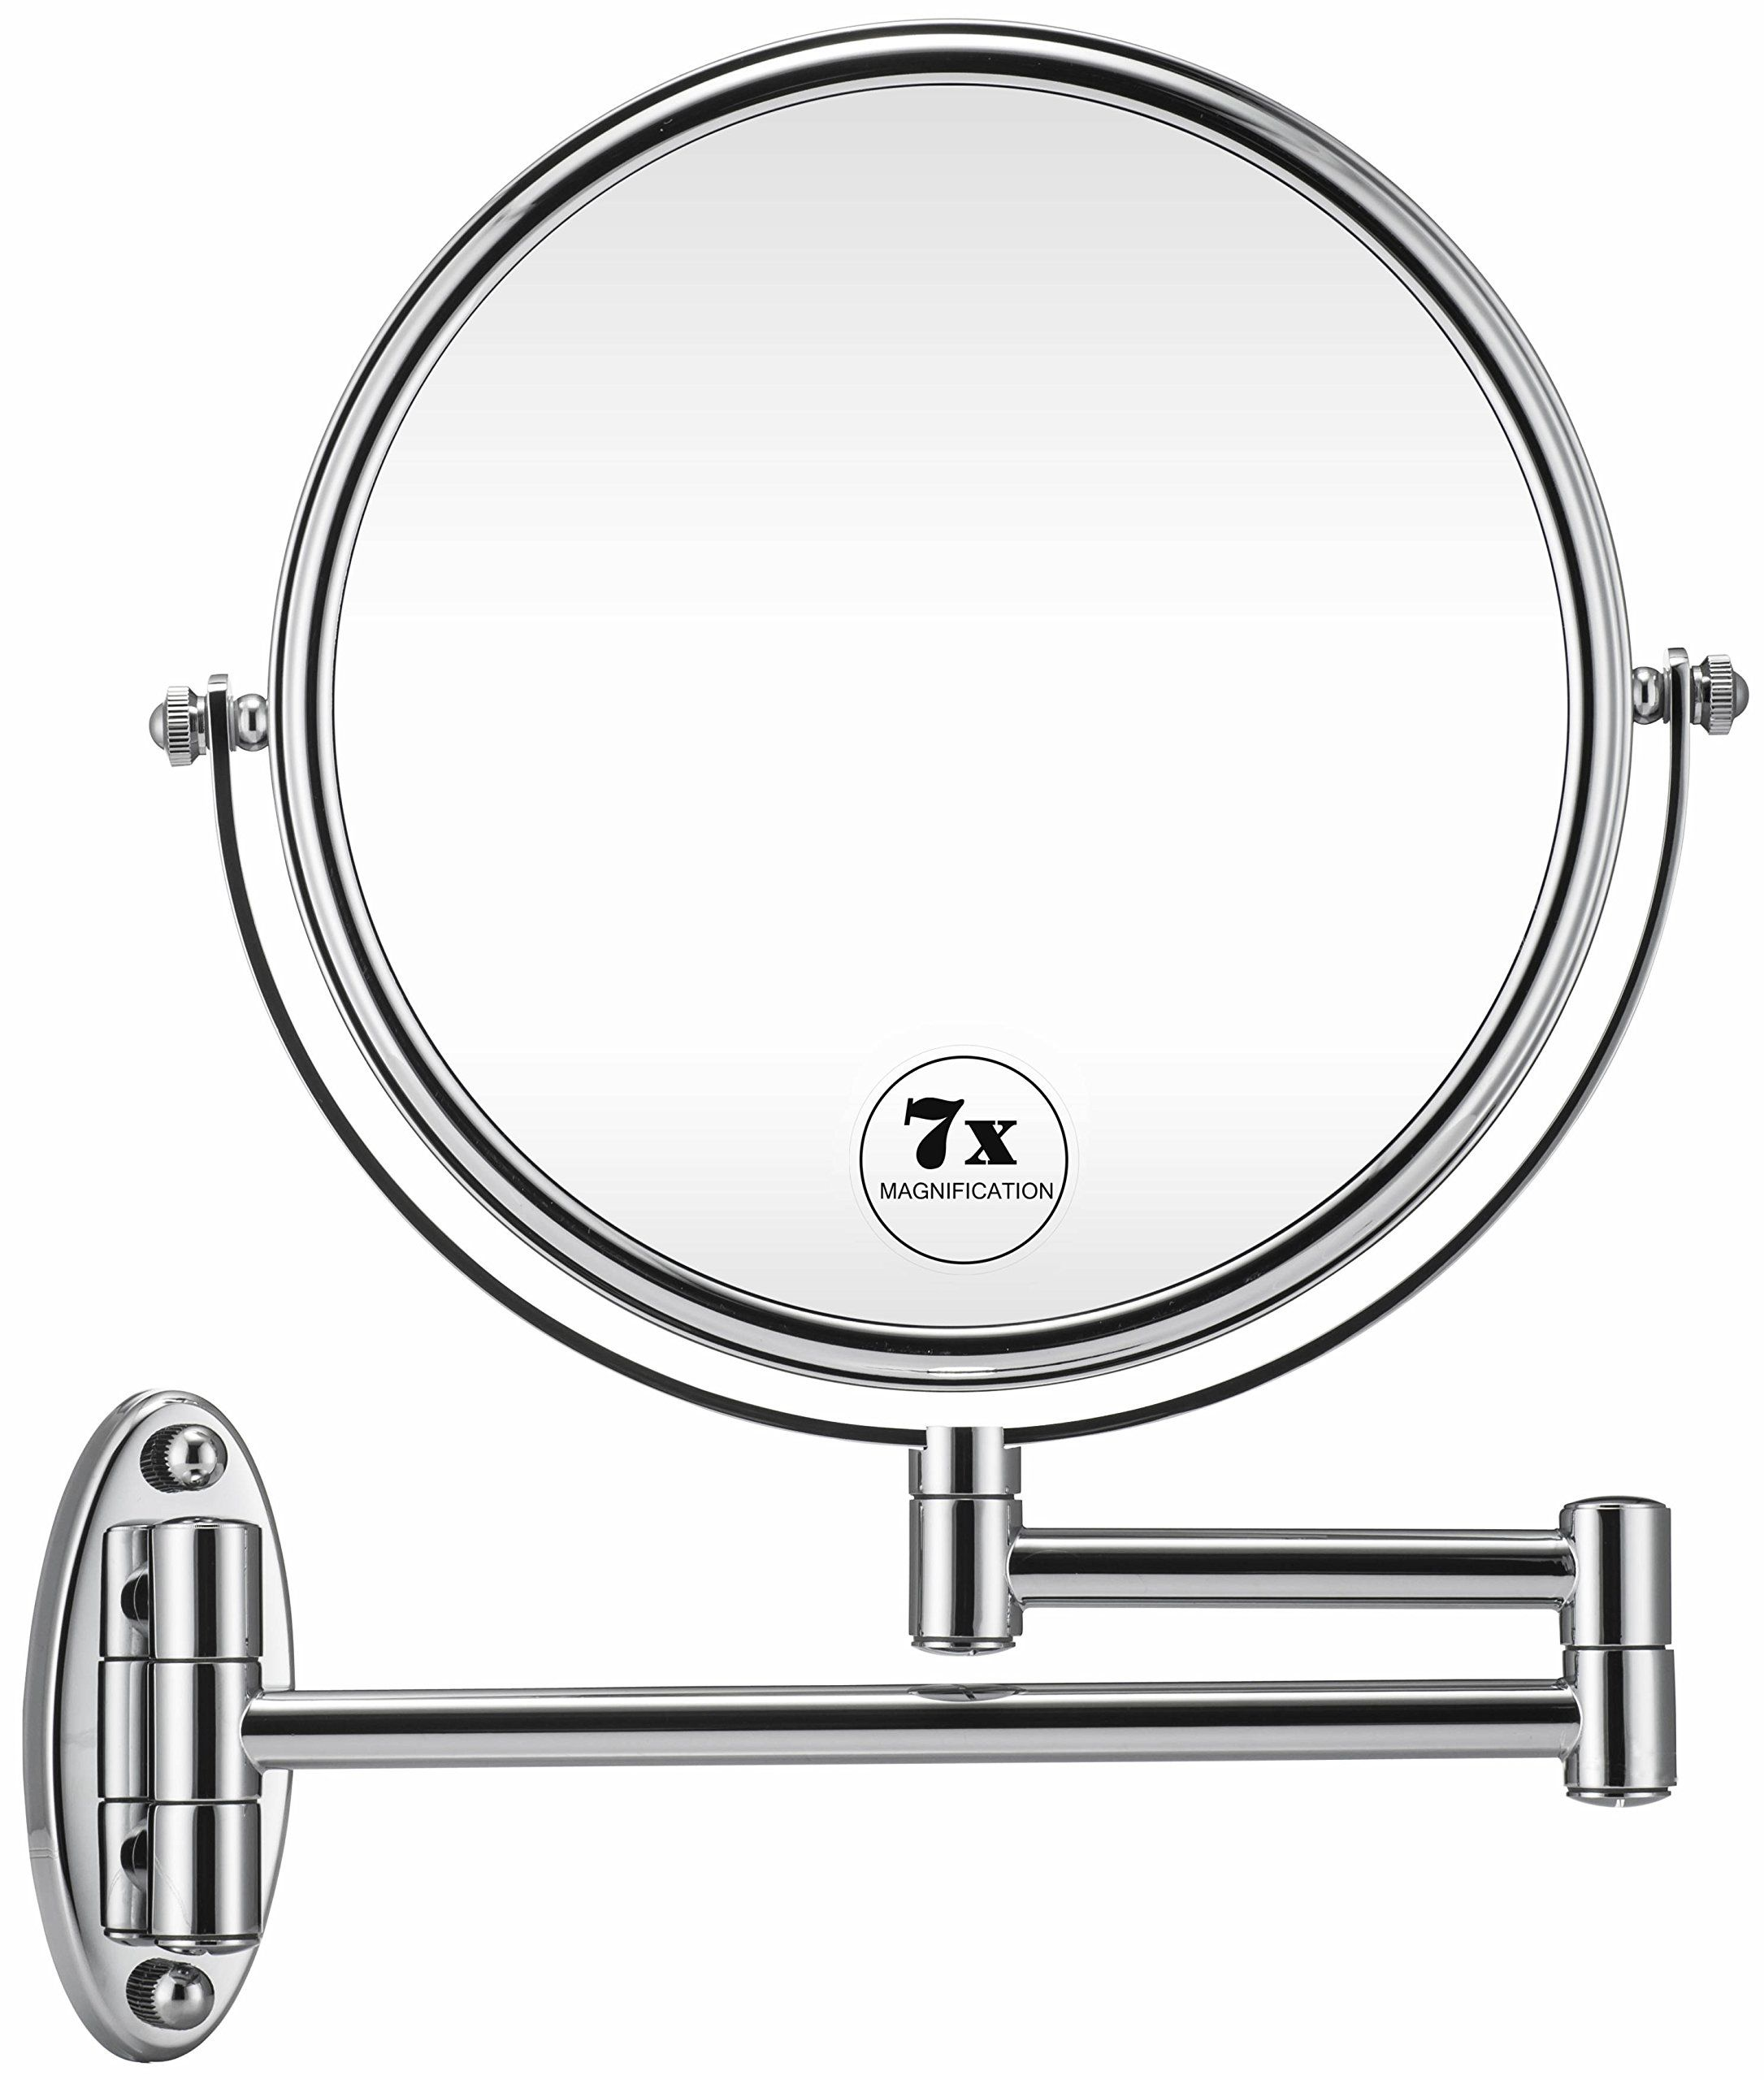 Gloriastar 7x Wall Mounted Makeup Mirror Double Sided Magnifying Makeup Mirror For Bathroom 8 Inch Extensio Wall Mounted Makeup Mirror Mirror Bathroom Mirror